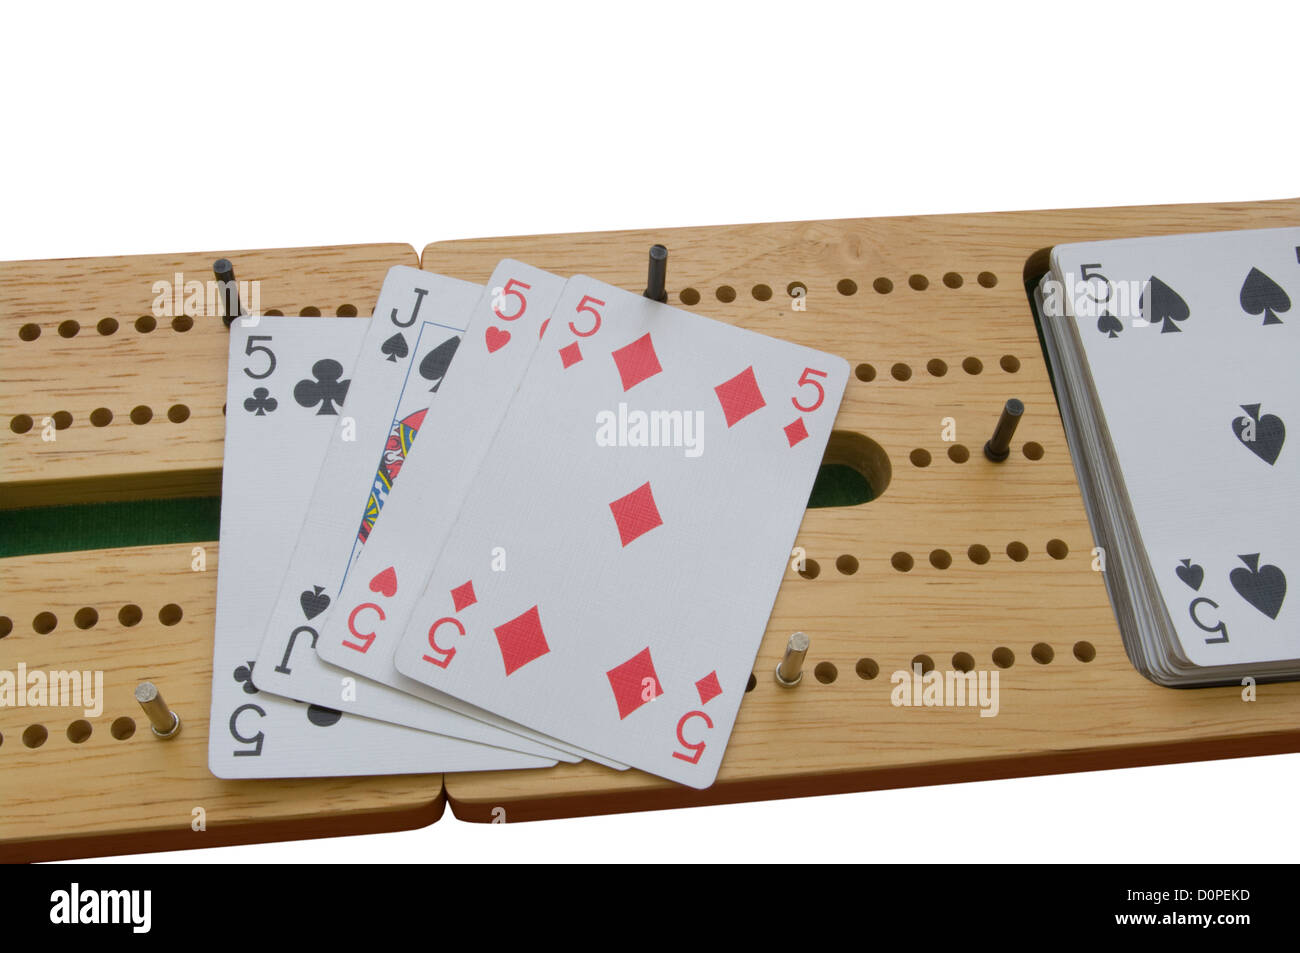 Cribbage Board and Playing Cards - Stock Image